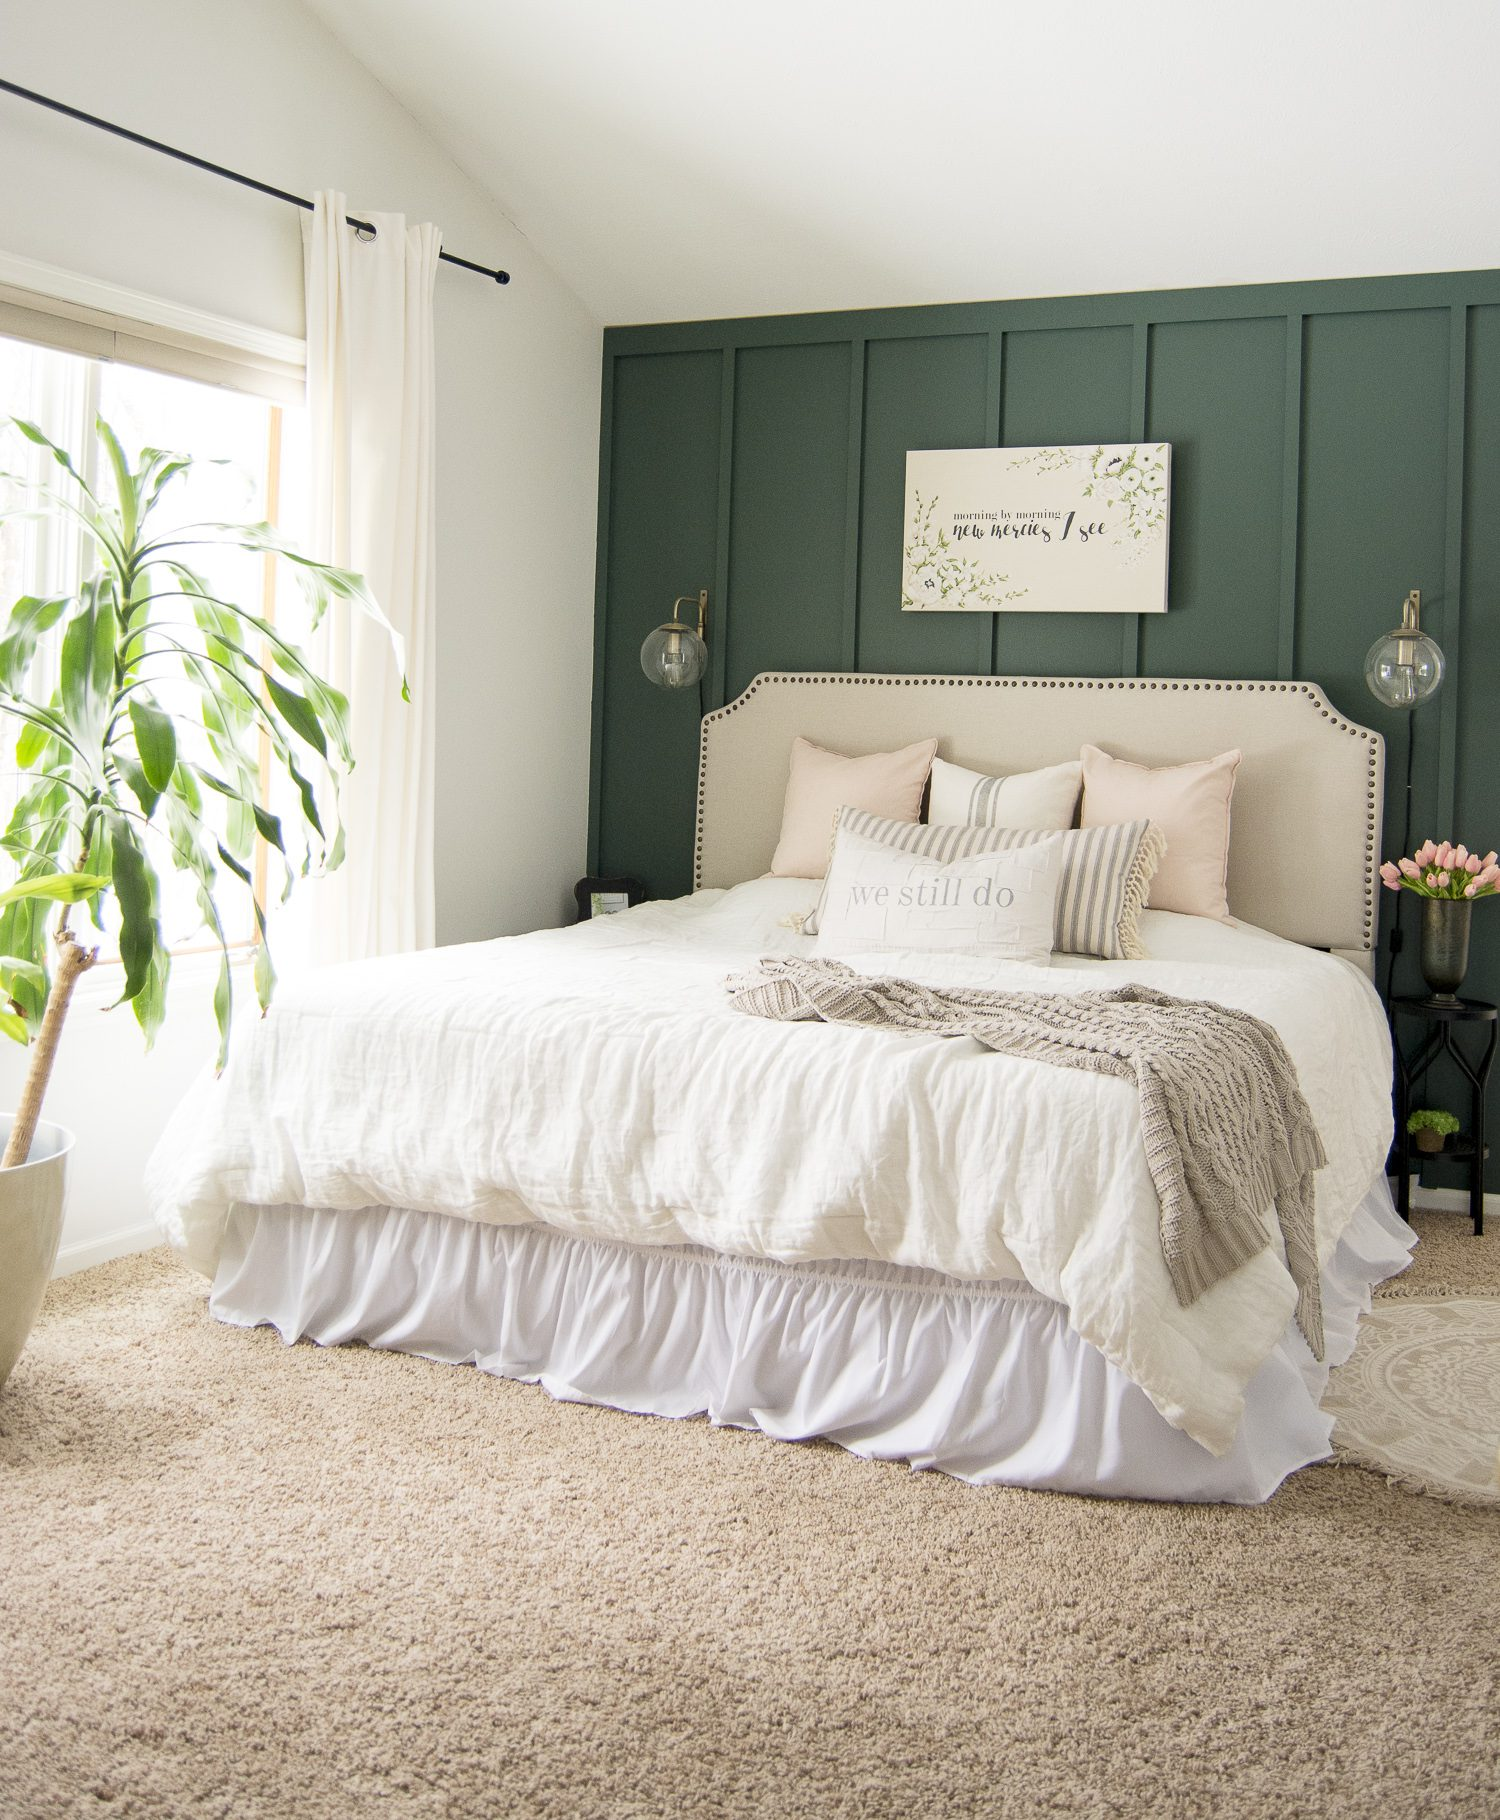 Do you love a combination of modern, cottage, and farmhouse design styles? Learn the key elements that make a simple modern farmhouse bedroom today! #fromhousetohaven #modernfarmhousebedroom #modernfarmhouse #bedroomdecor